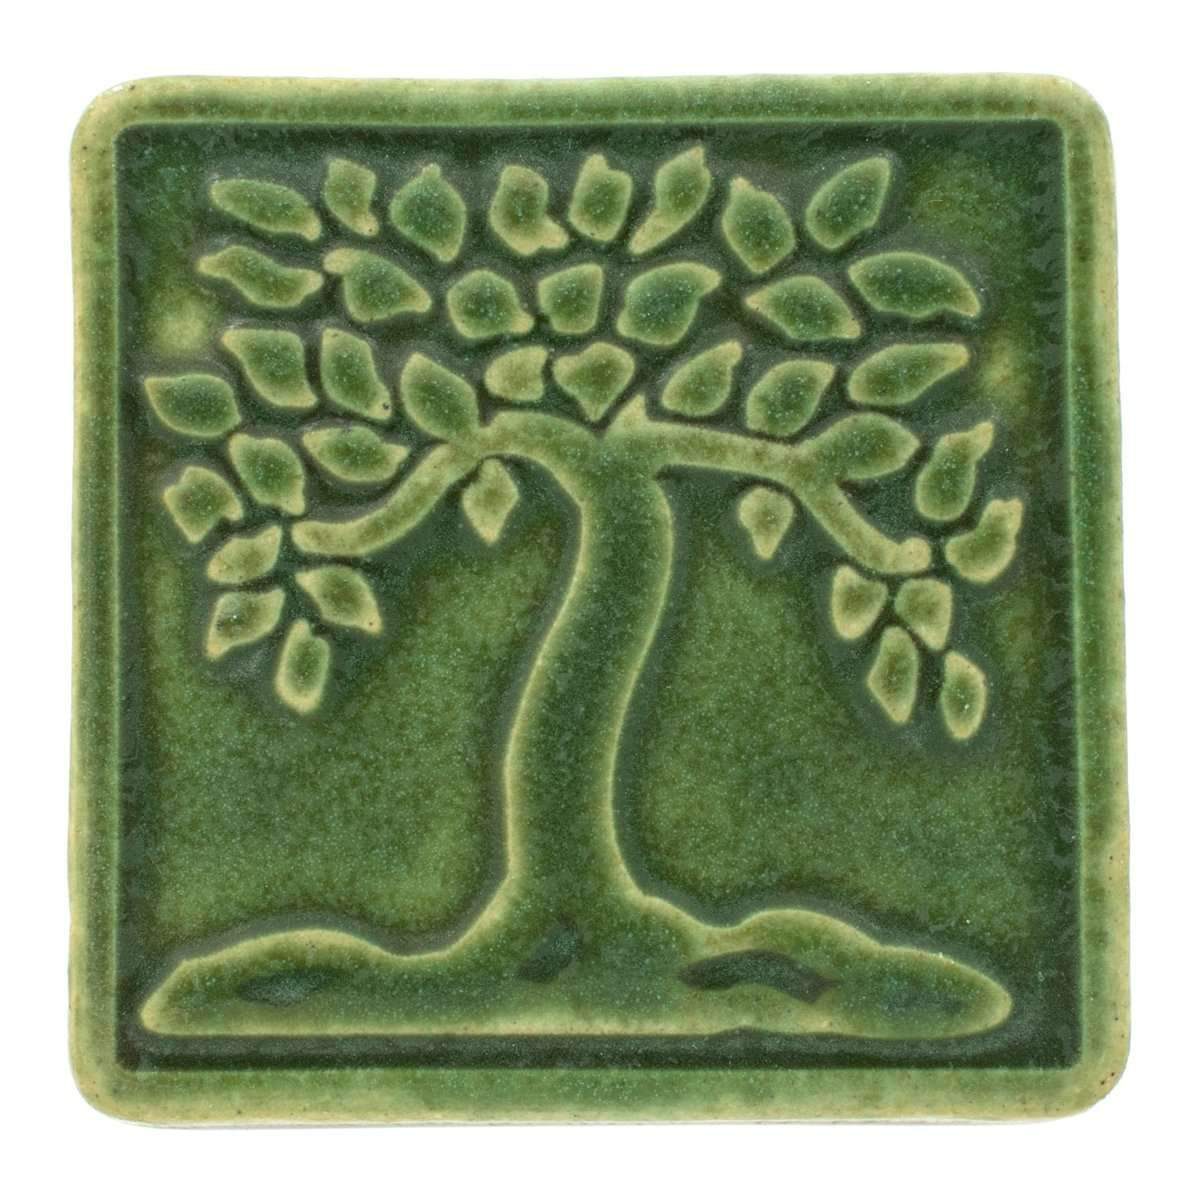 4x4 Botanical Tree Pewabic Tile - Leaf